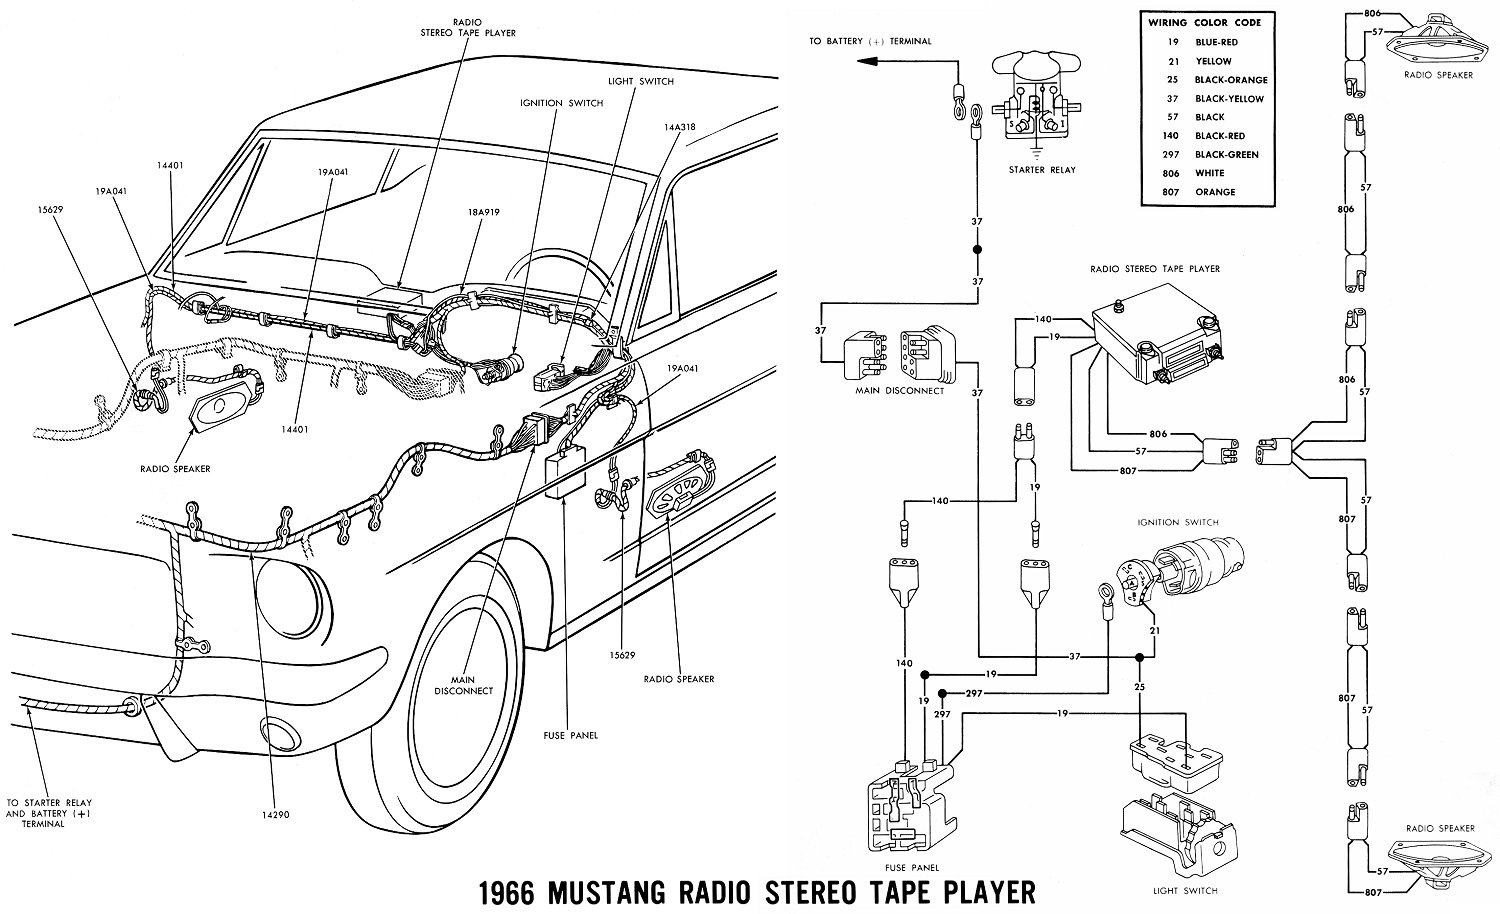 1969 mustang wiring diagram custom wiring diagram u2022 rh littlewaves co 1967 Mustang Dash Wiring Diagram 1967 Mustang Dash Wiring Diagram